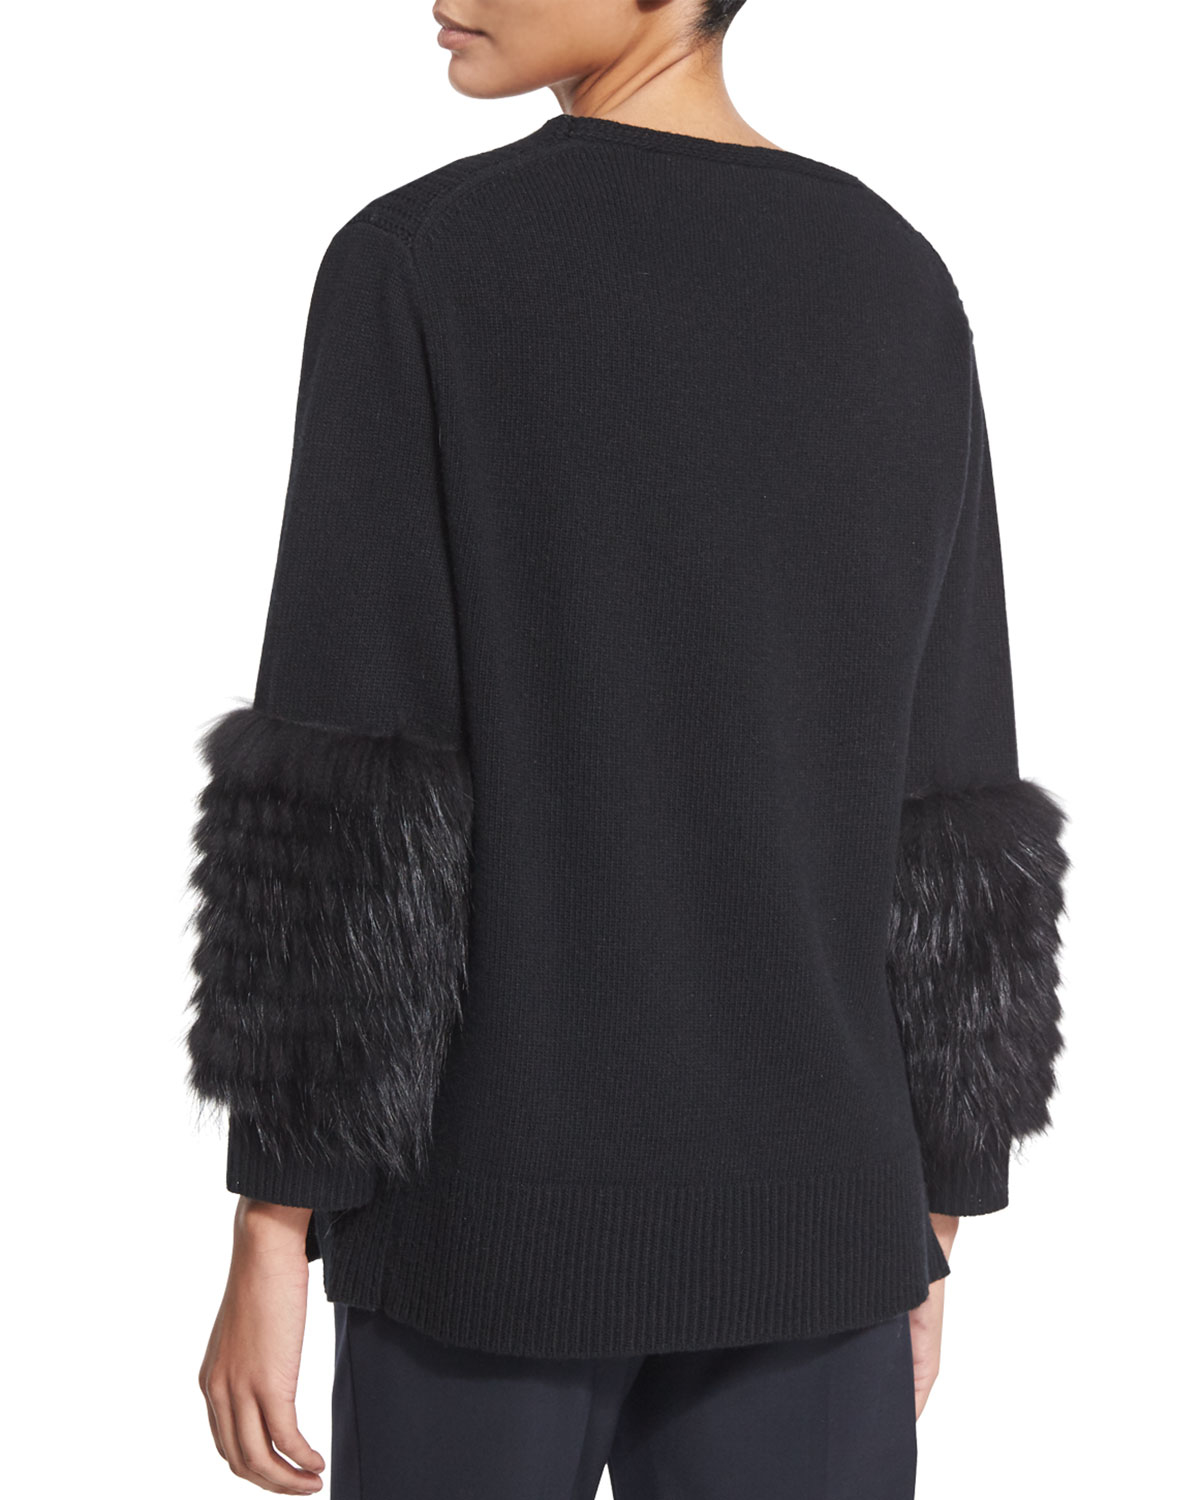 Long Sleeve Fur Cuff Knitted Jumper By Paola Collection At: Sally Lapointe Cable-knit Fur-sleeve Sweater In Black